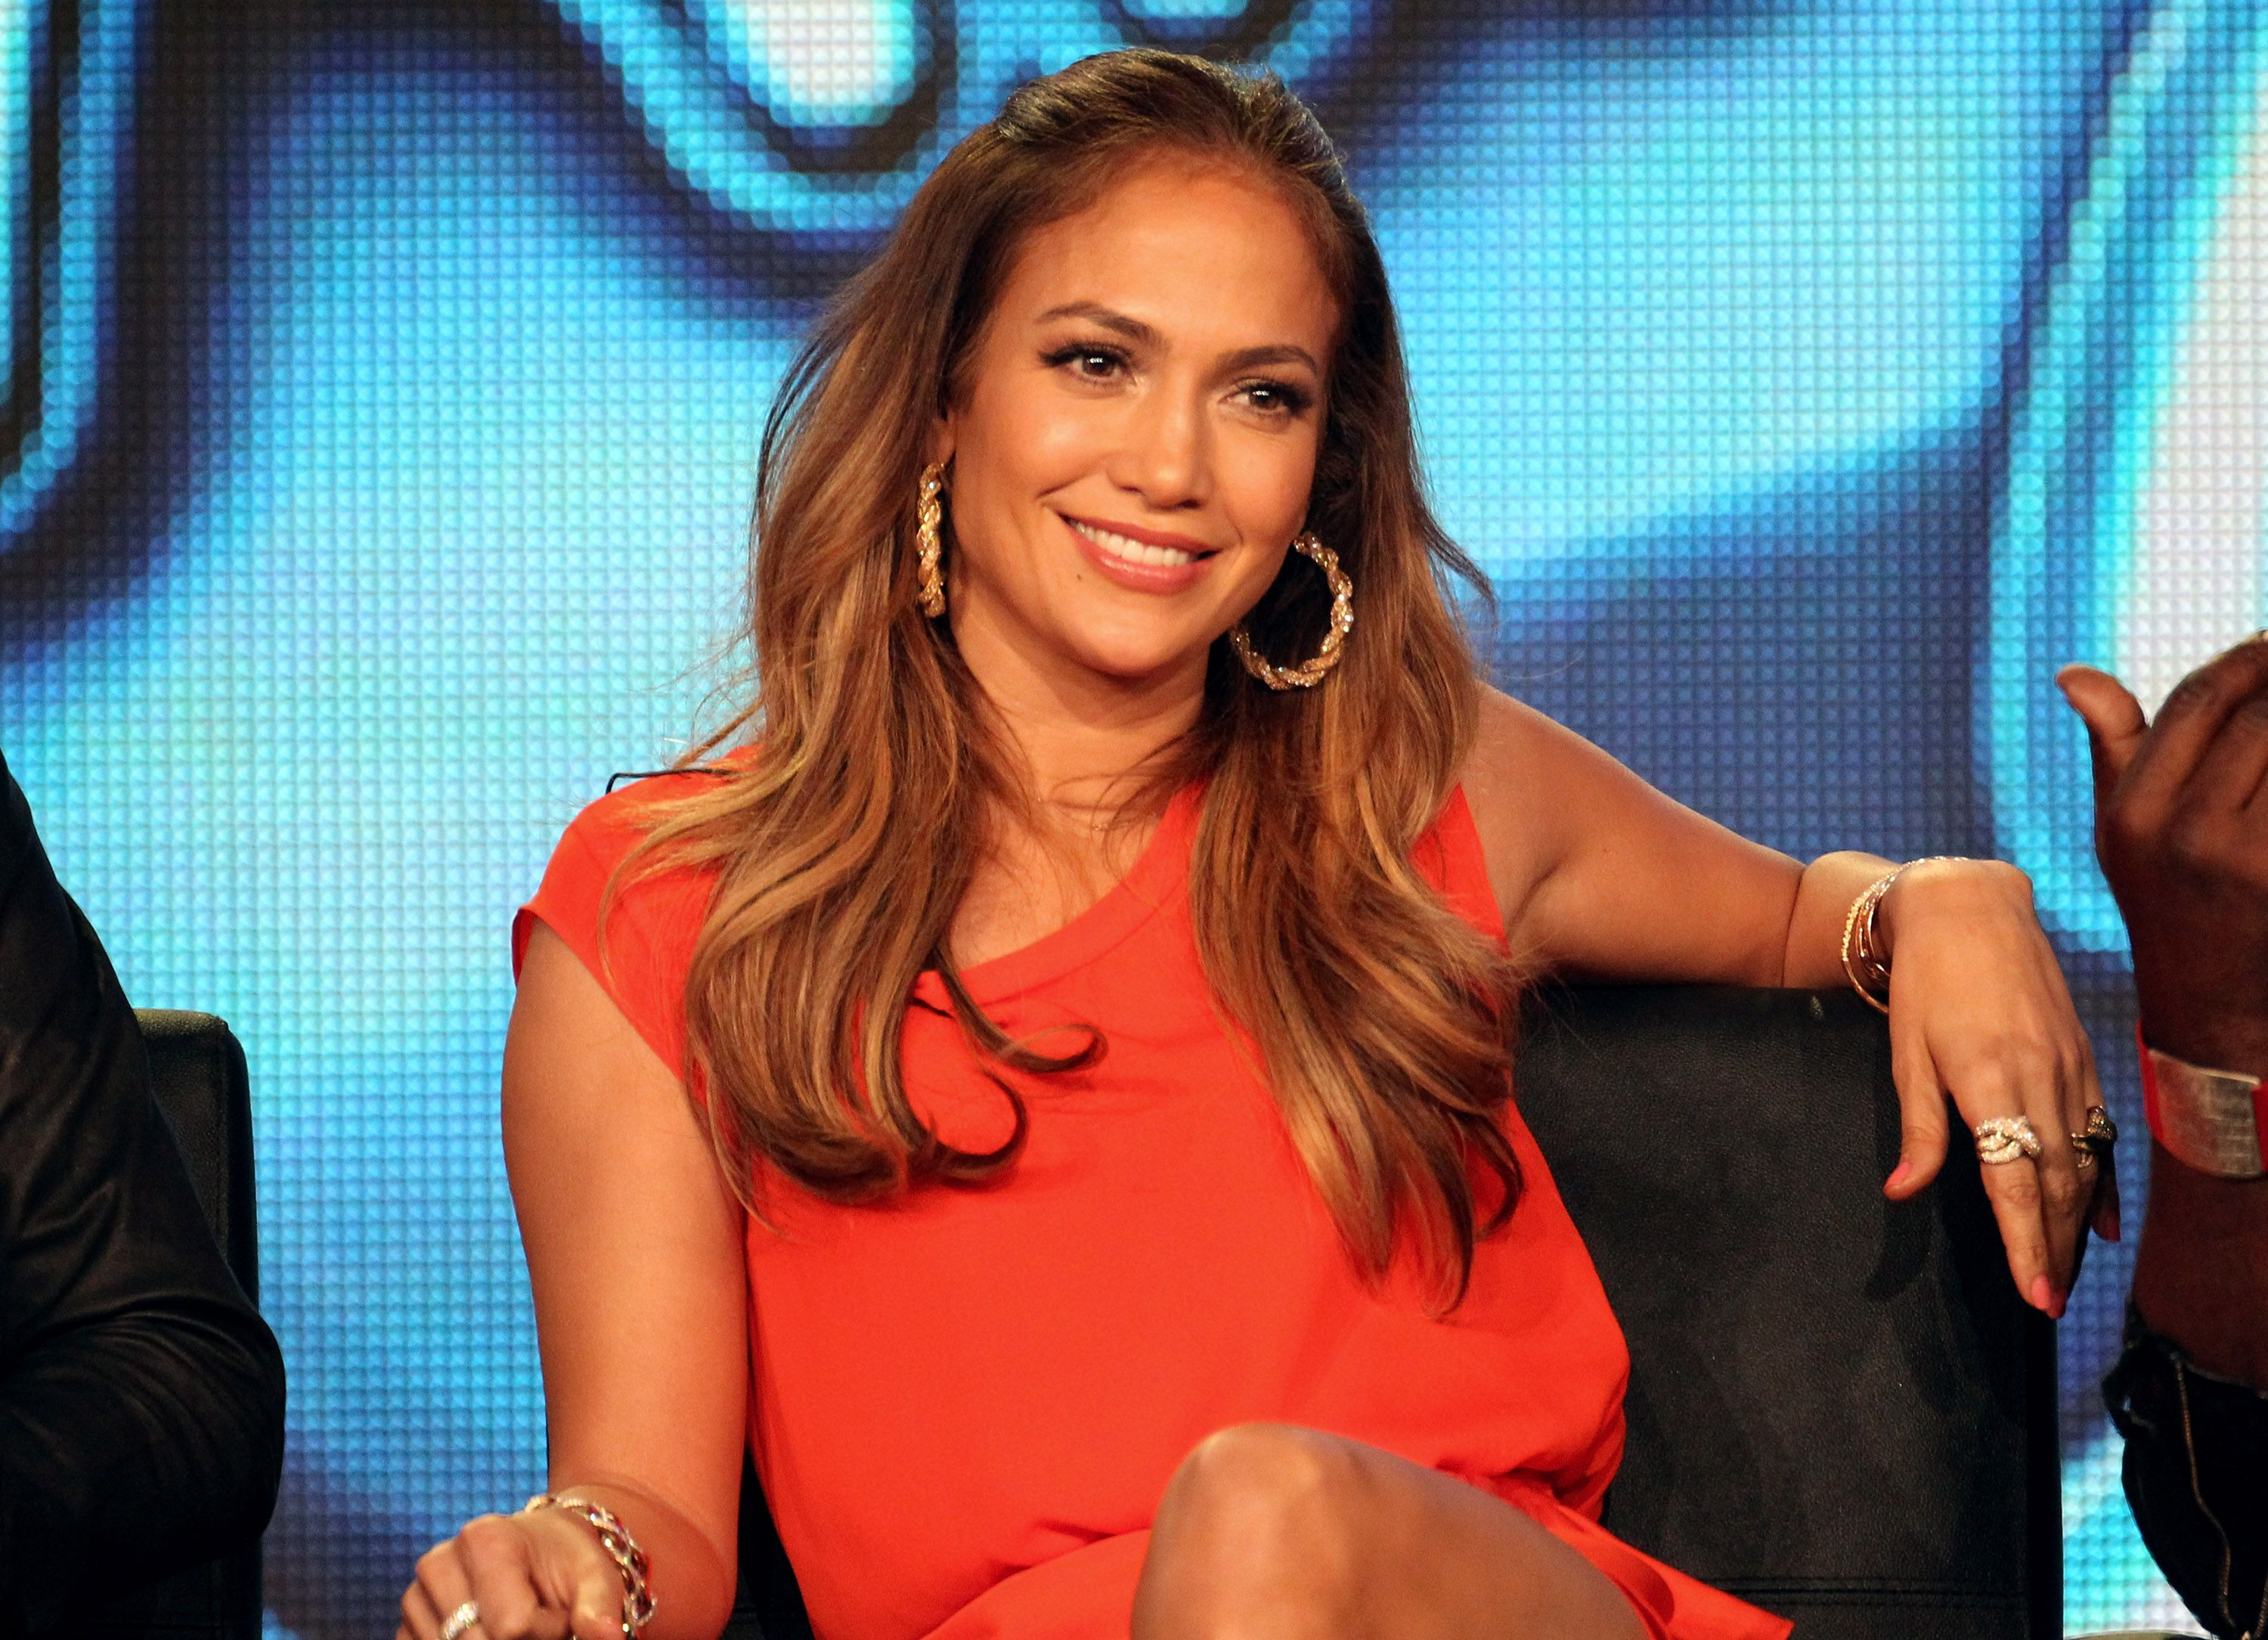 Jennifer Lopez spoke at the 'American Idol' panel at The Langham Huntington Hotel and Spa on January 8, 2012 | Photo: Getty Images